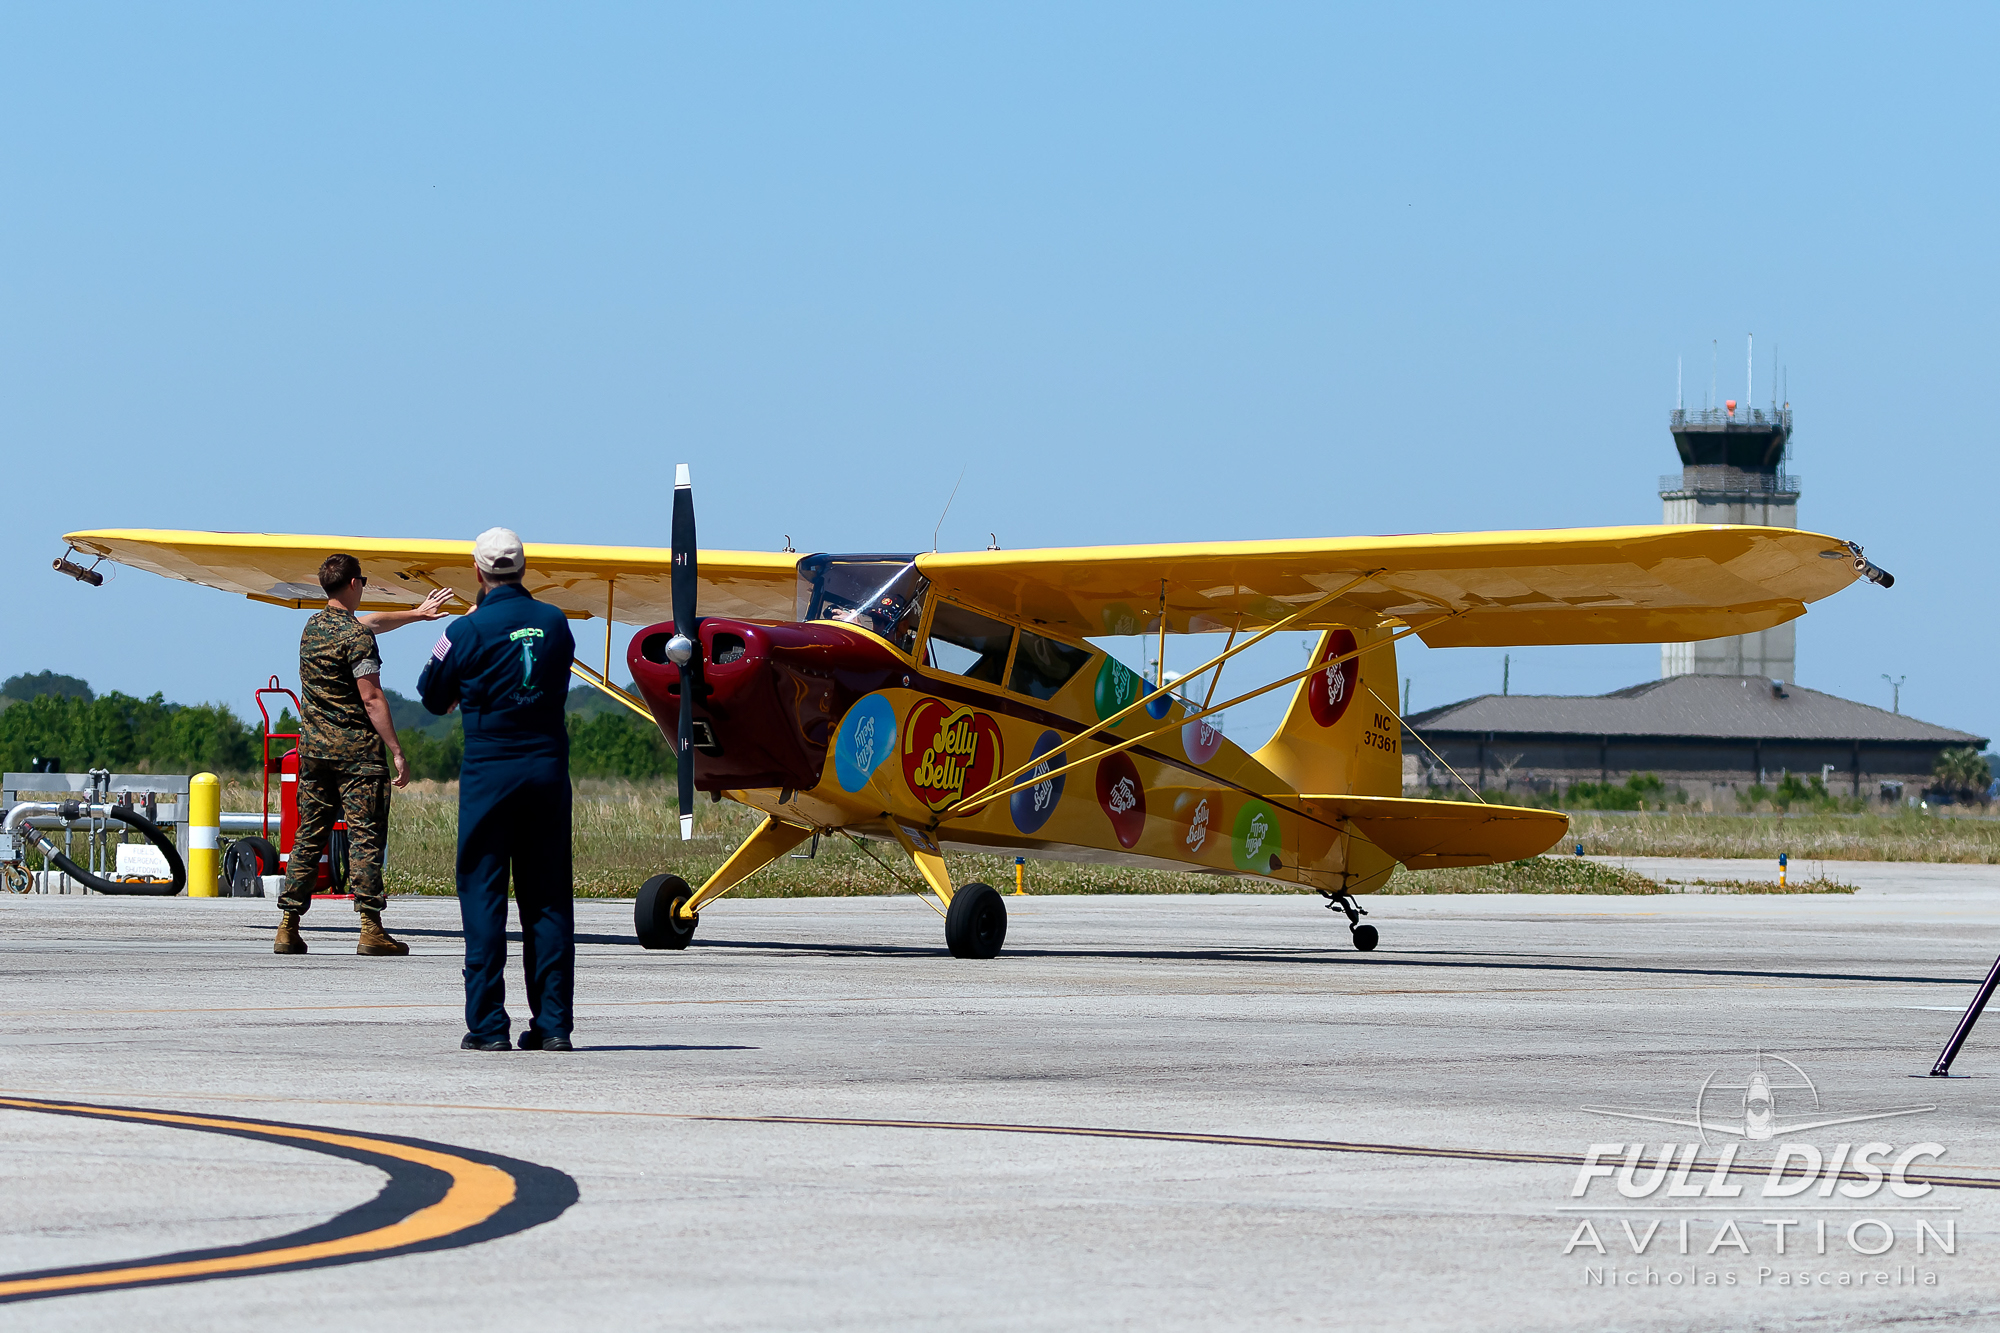 stop_cub_nicholaspascarella_fulldiscavation_aviation_airshow.jpg